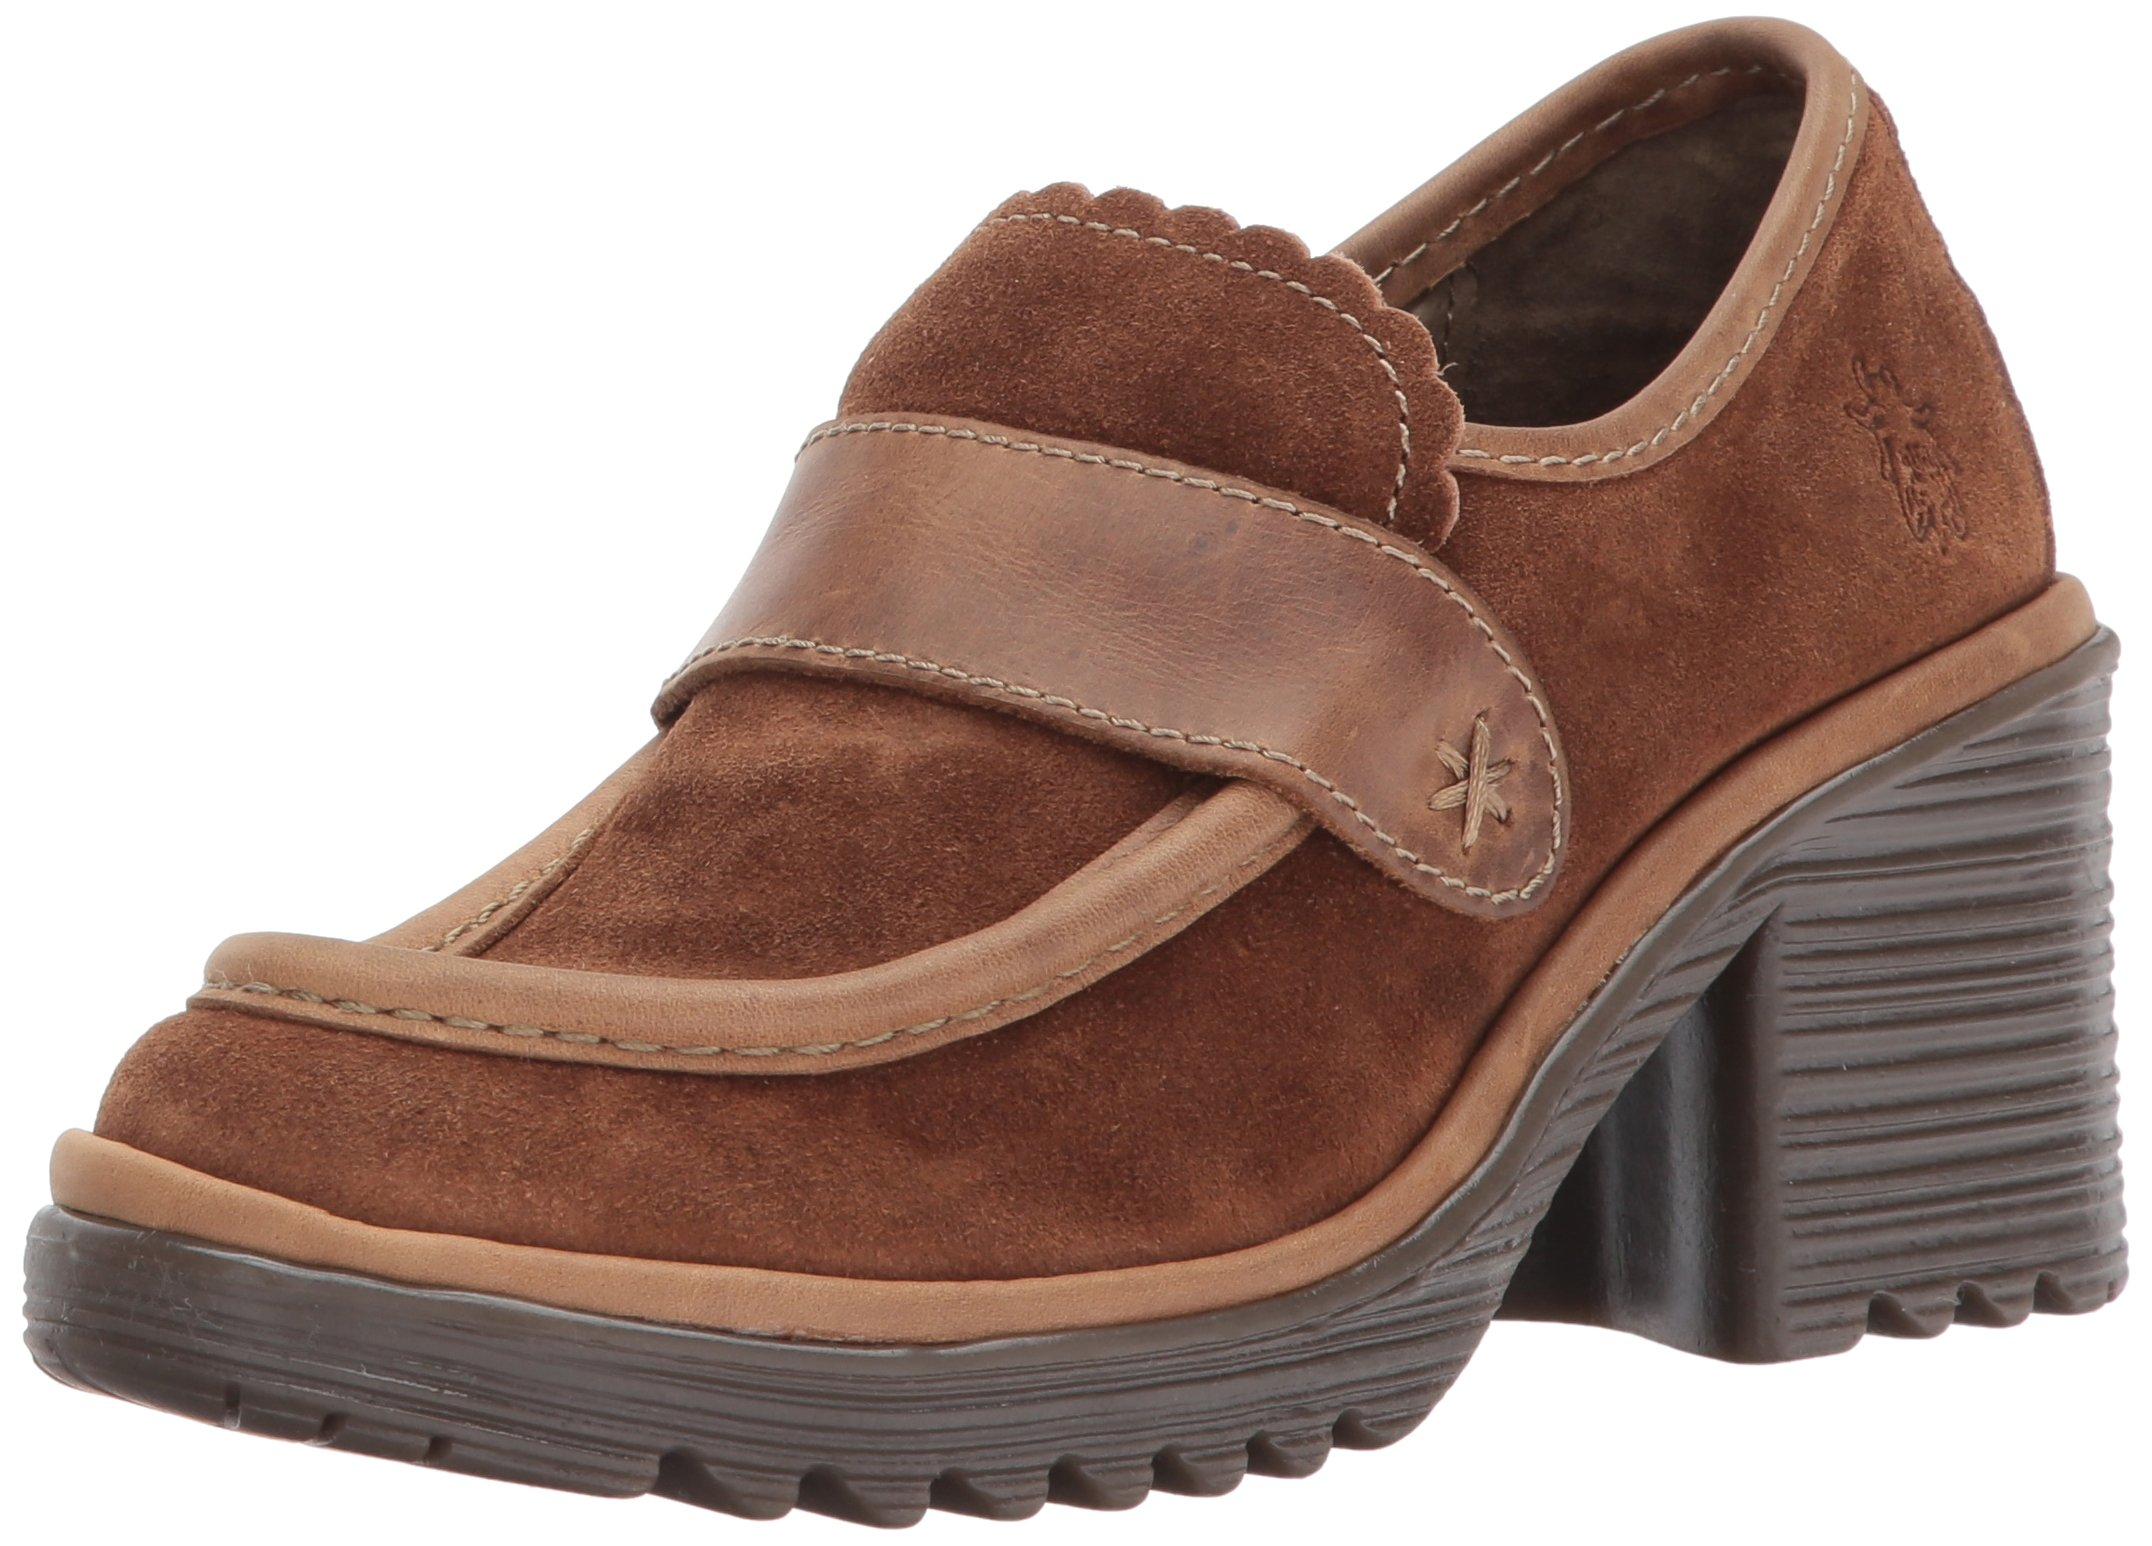 FLY London Women's WEND764FLY Penny Loafer, Camel Oil Suede/Rug, 39 M EU (8-8.5 US)